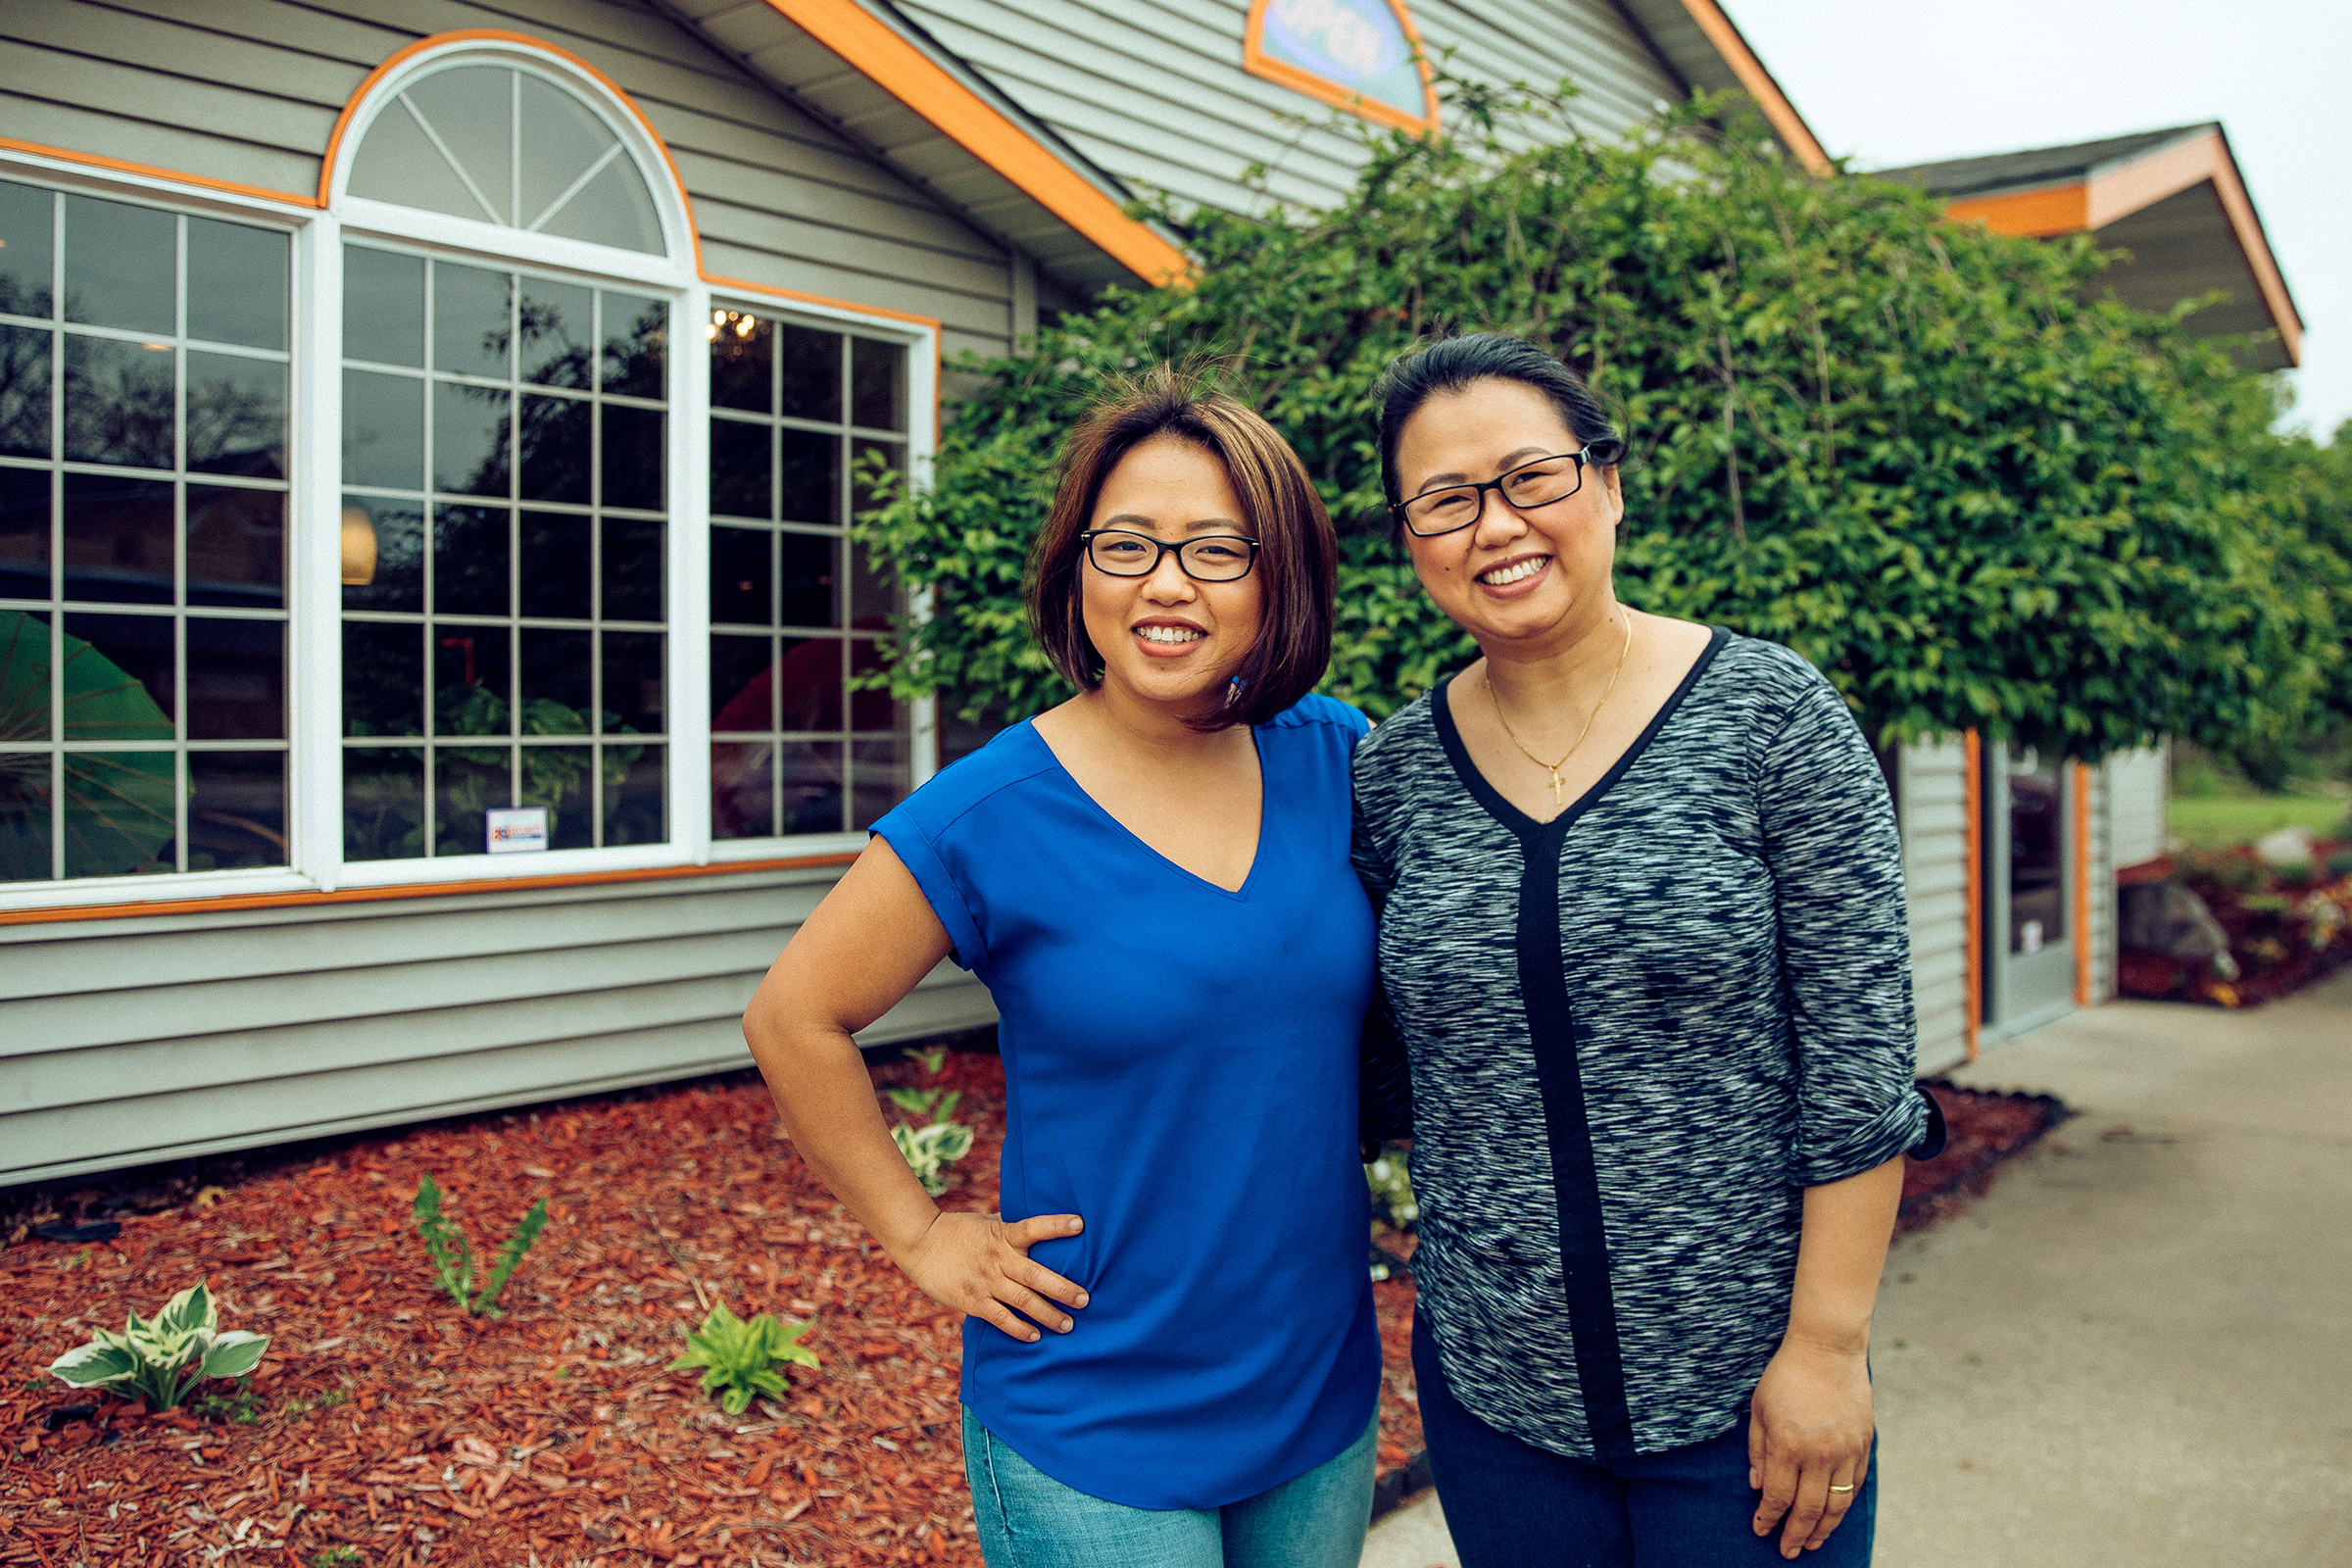 Amanda Sunthang and her sister, Jennifer, owners of Shwe Mandalay Burmese Cuisine, poses outside in front of the restaurant in Battle Creek, Michigan.